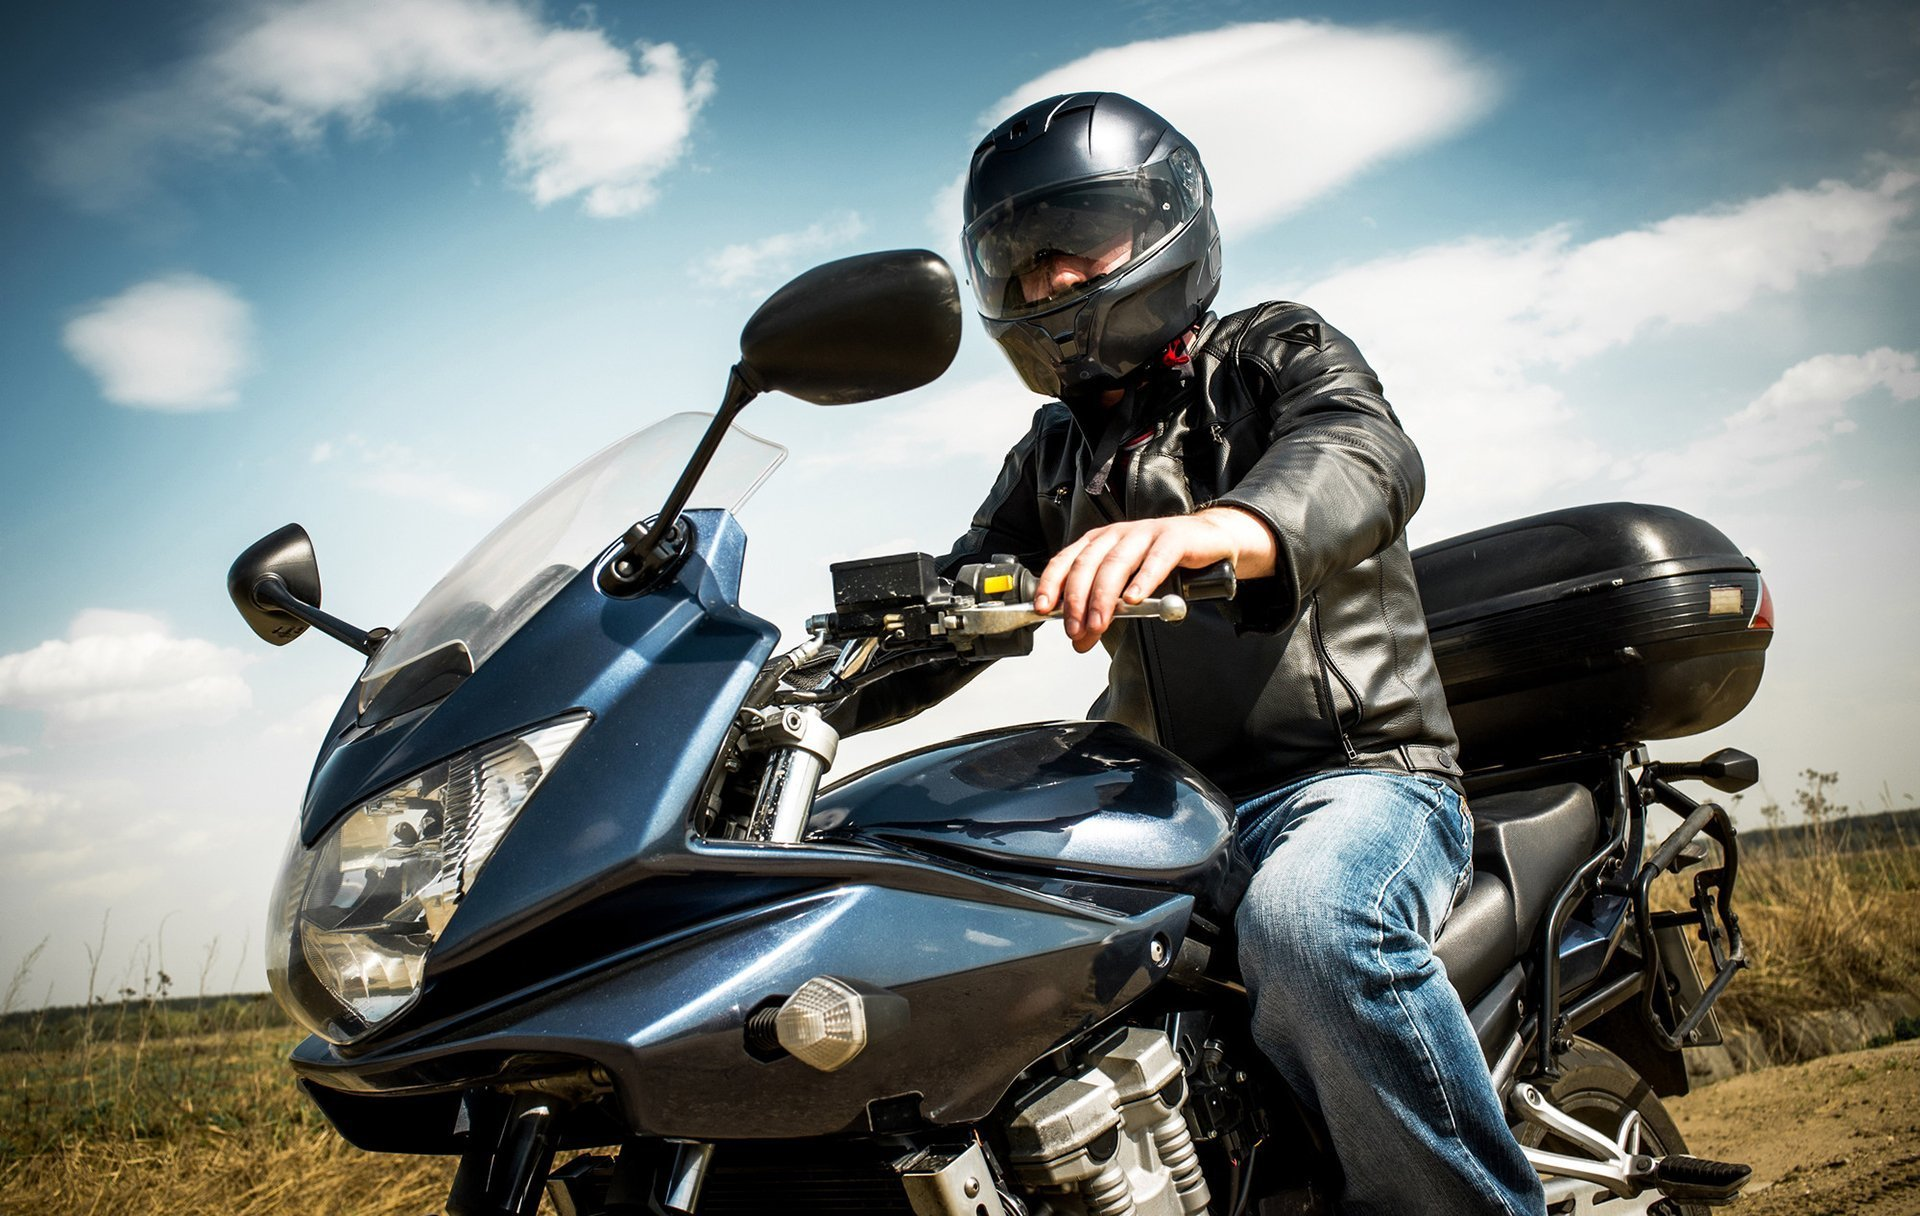 motorcycle training experts